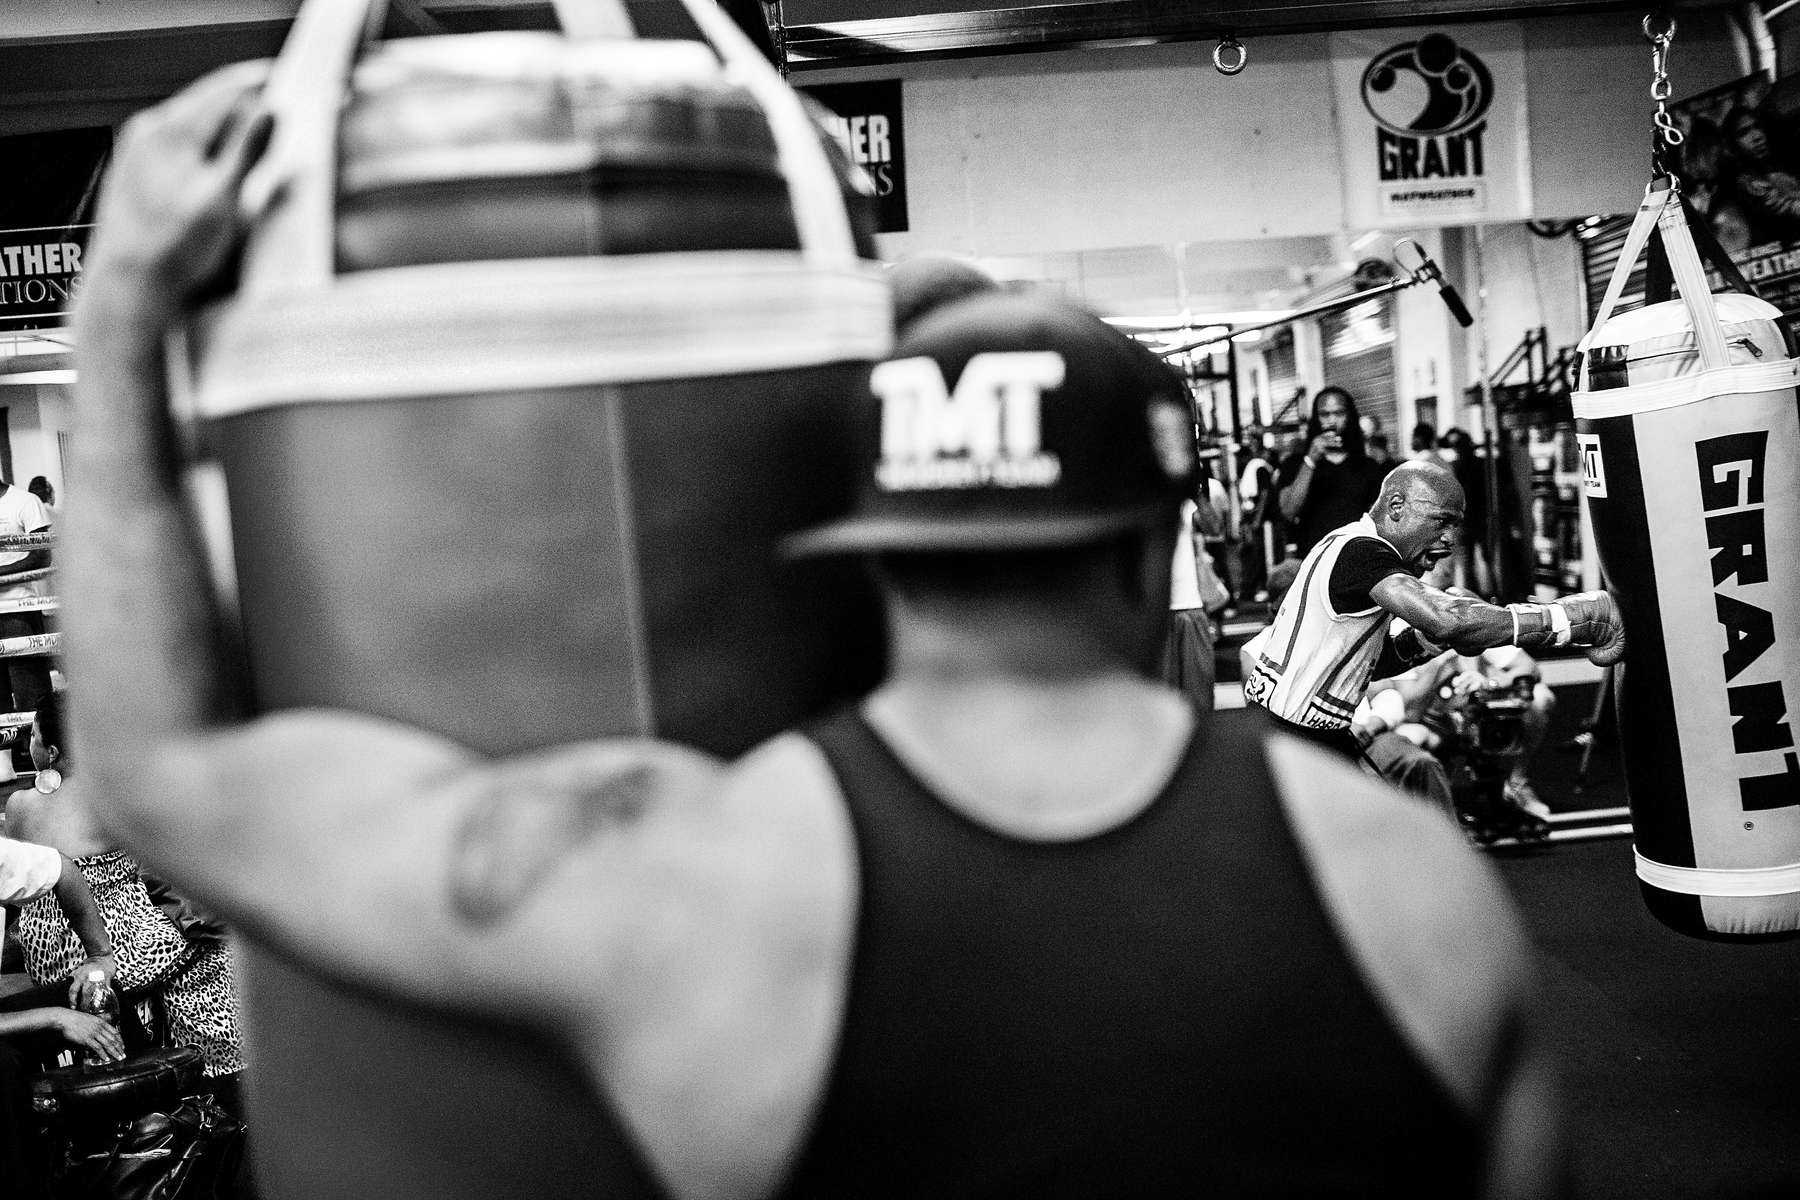 LAS VEGAS, NV - AUGUST 10: With temperatures in the gym exceeding 100 degrees, boxer Floyd Mayweather hits the heavy bag during practice. He throws about 8,000 punches per workout. (Photo by Benjamin Lowy/Reportage by Getty Images)